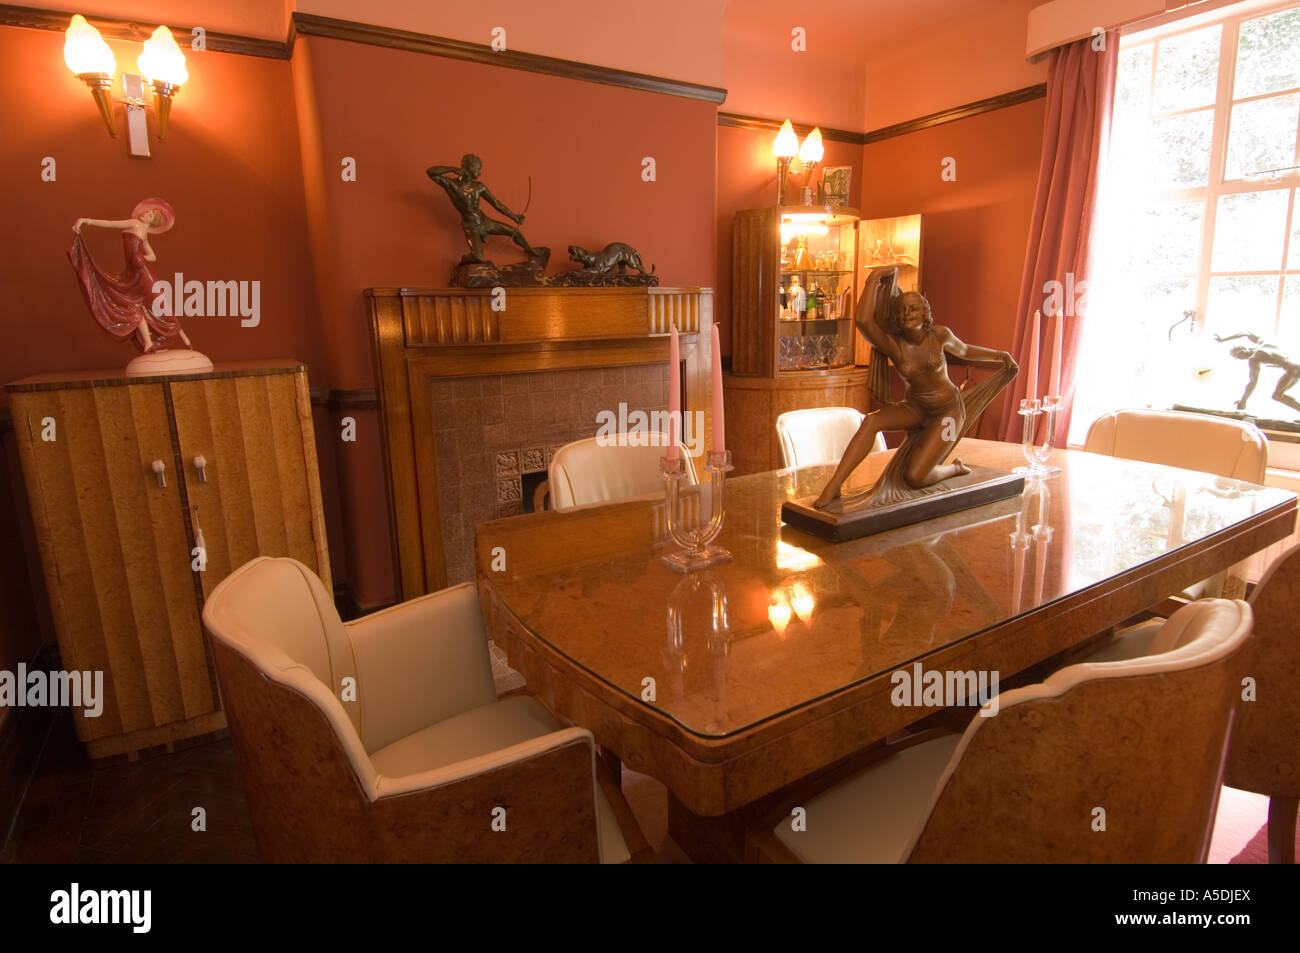 Refurbished Art Deco Nouveau 1930 S House Interior Dining Room With Origianal Ornaments